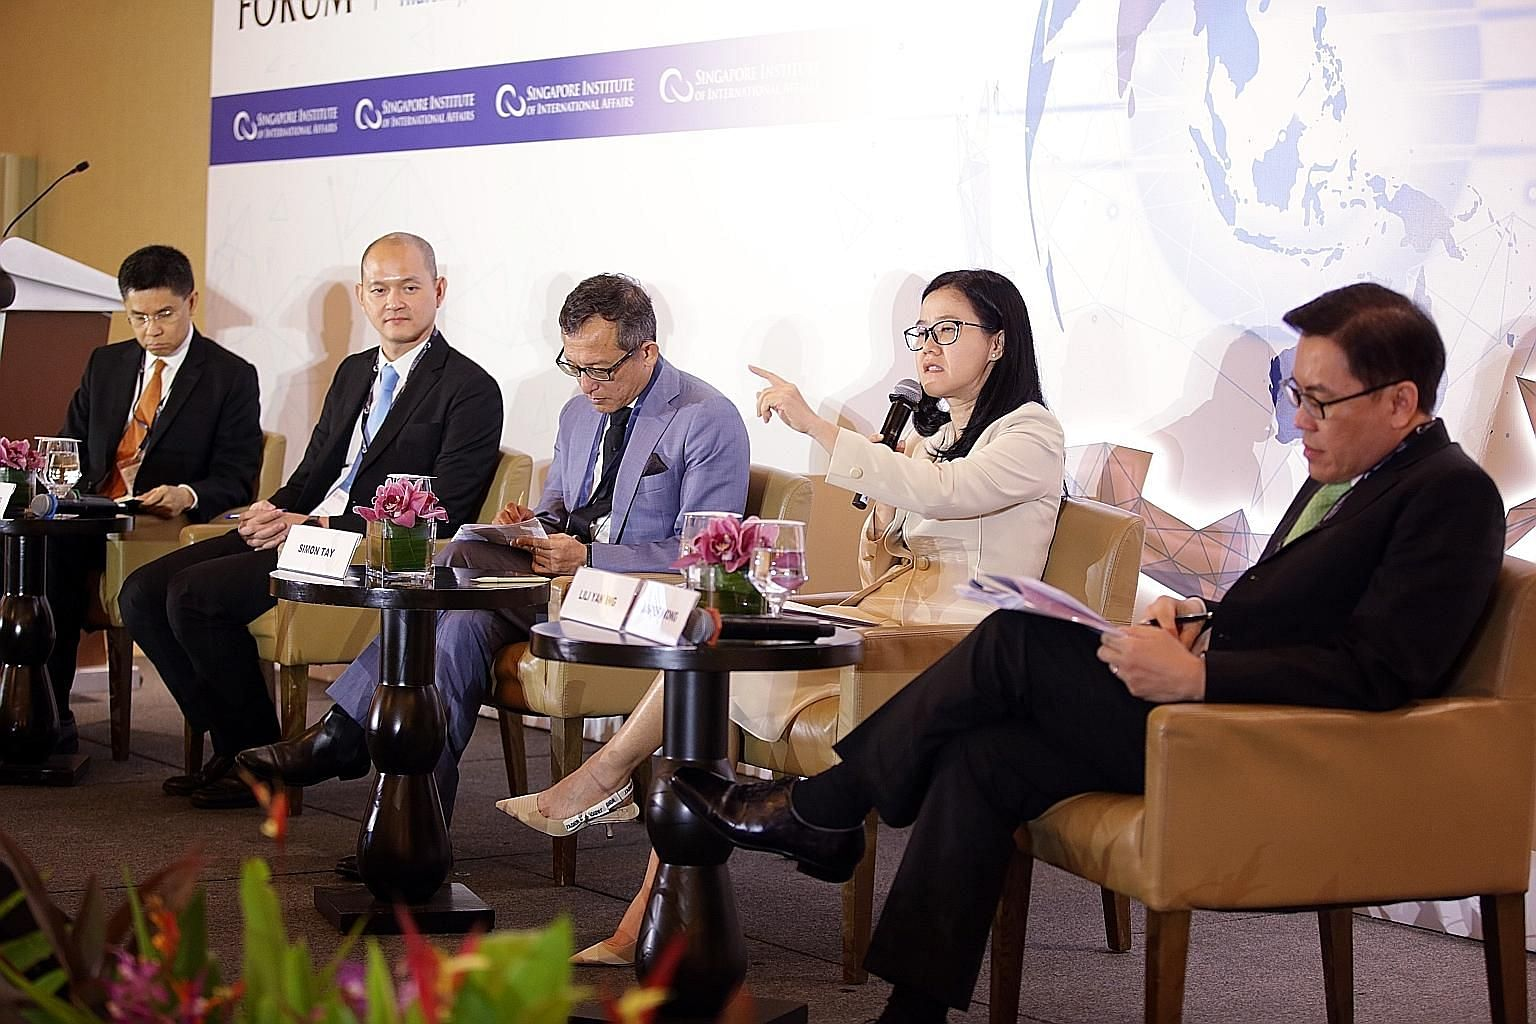 At the 12th Asean and Asia Forum yesterday were (from left) Dr Panitan Wattanayagorn, associate professor at Chulalongkorn University; Dr Ong Kian Ming, Malaysia's Deputy Minister for International Trade and Industry; Singapore Institute of Internati